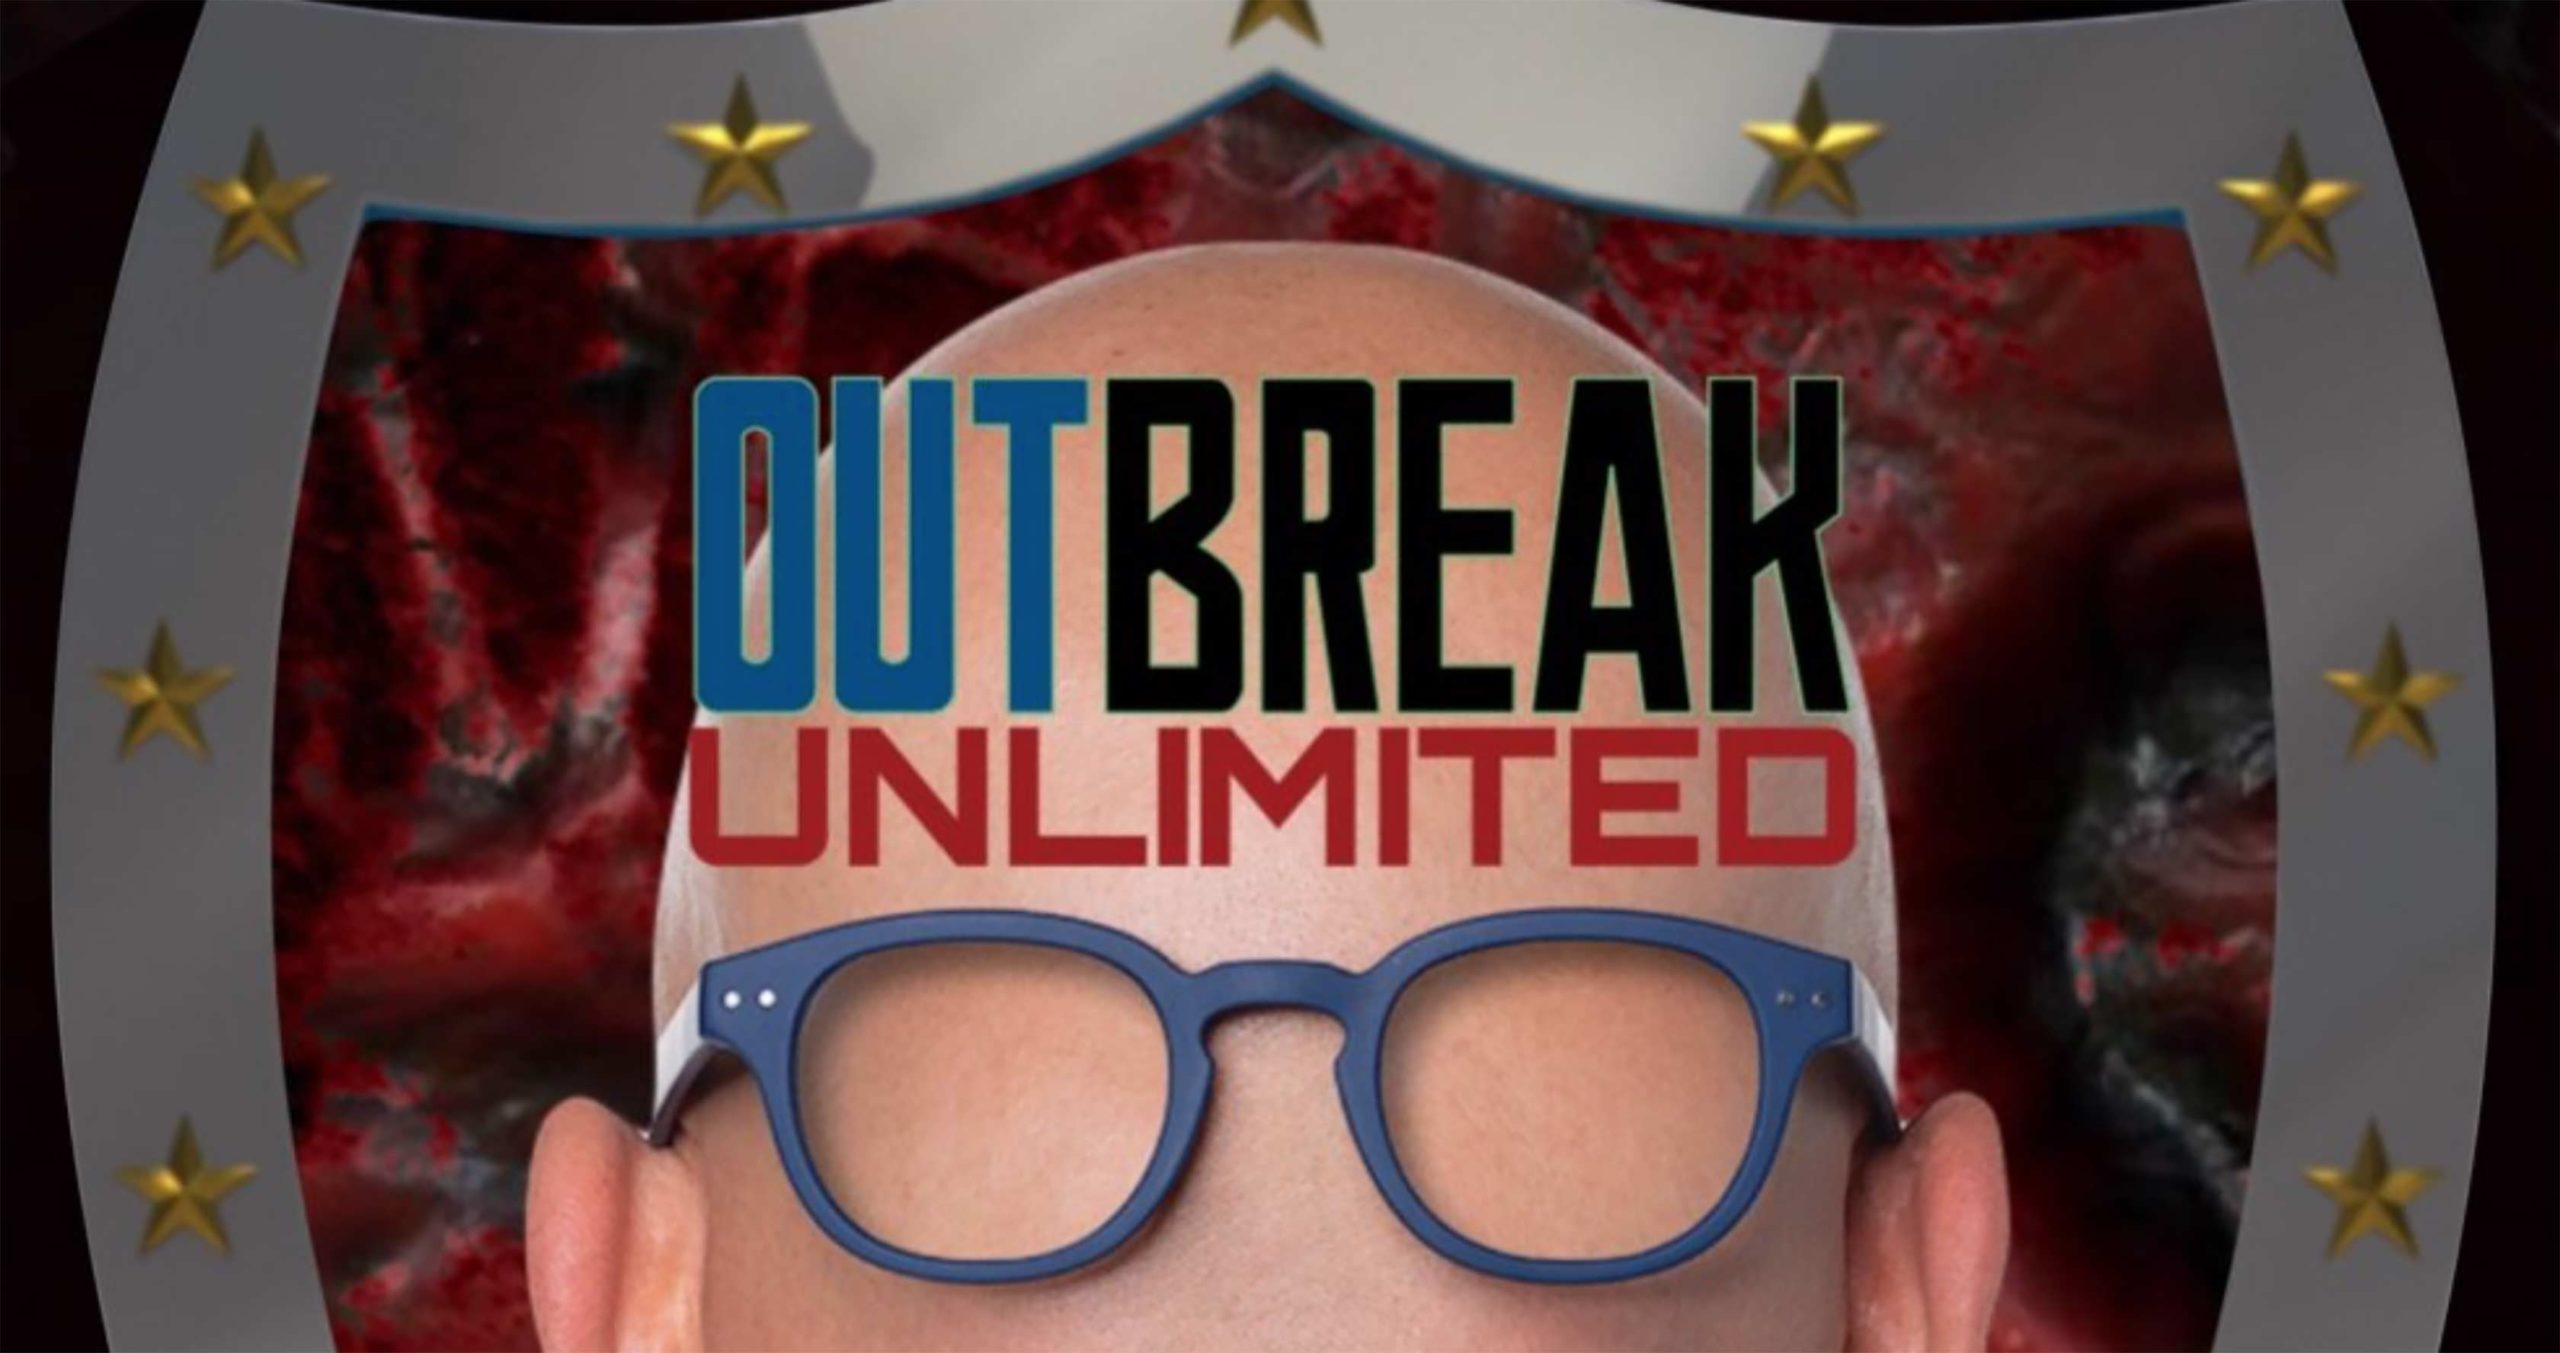 Outbreak Unlimited